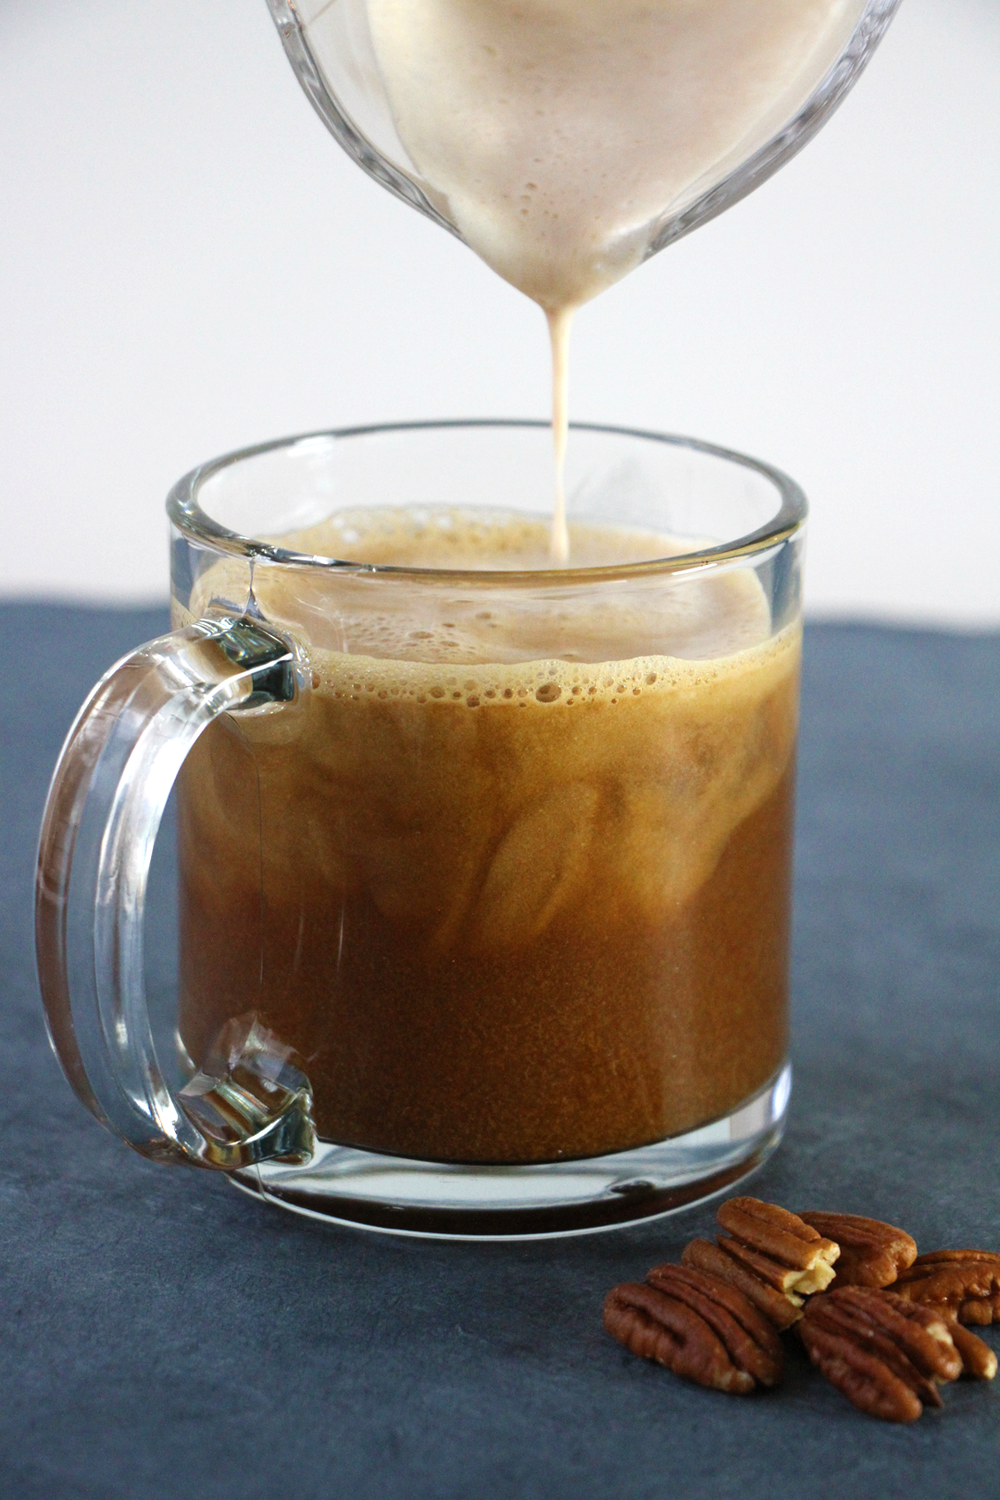 homemade-pecan-milk-and-coffee-2